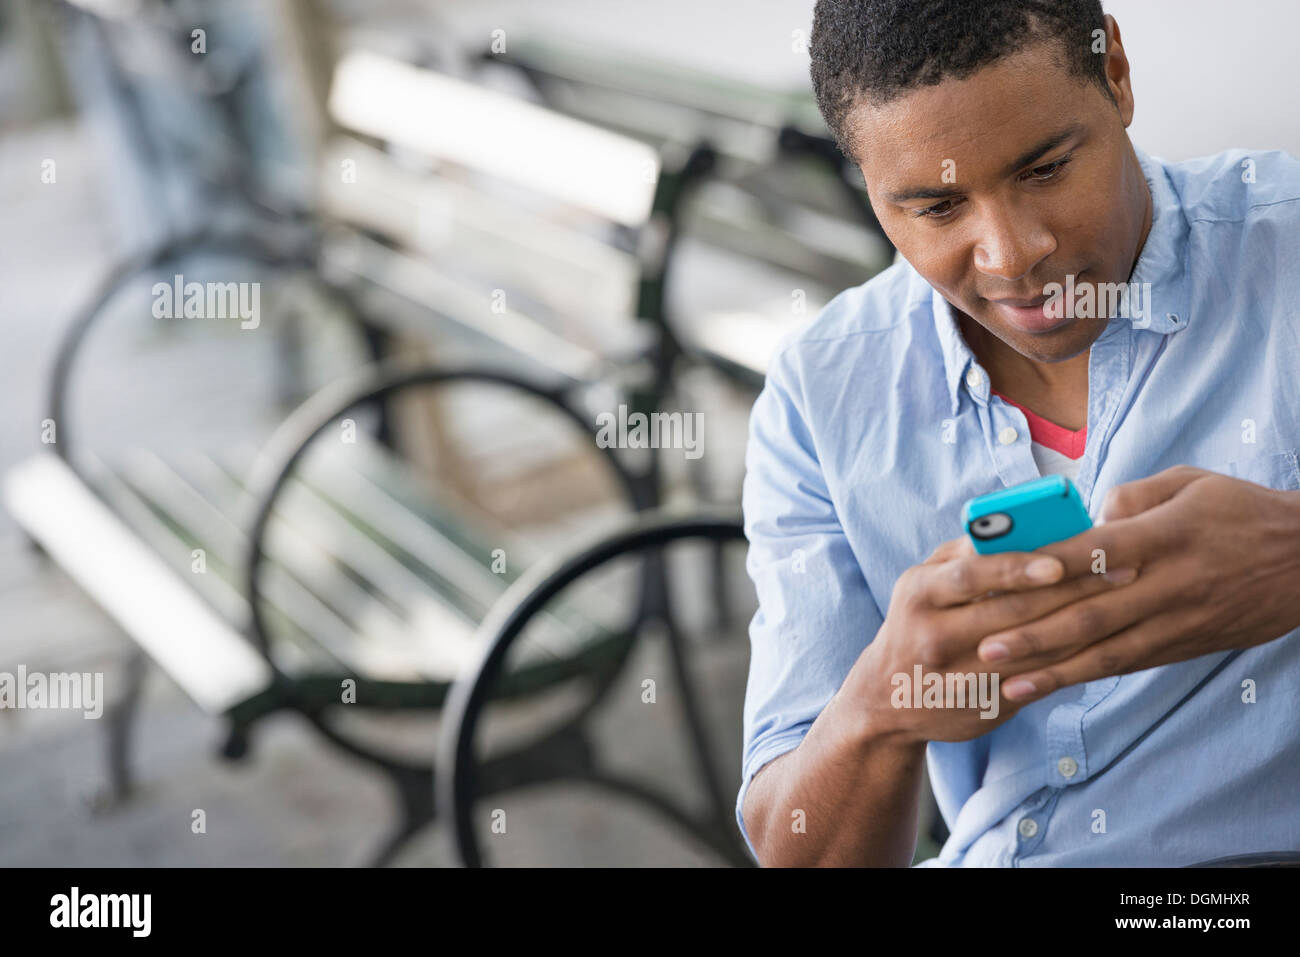 Summer in the city. A man sitting on a bench using a smart phone. Stock Photo